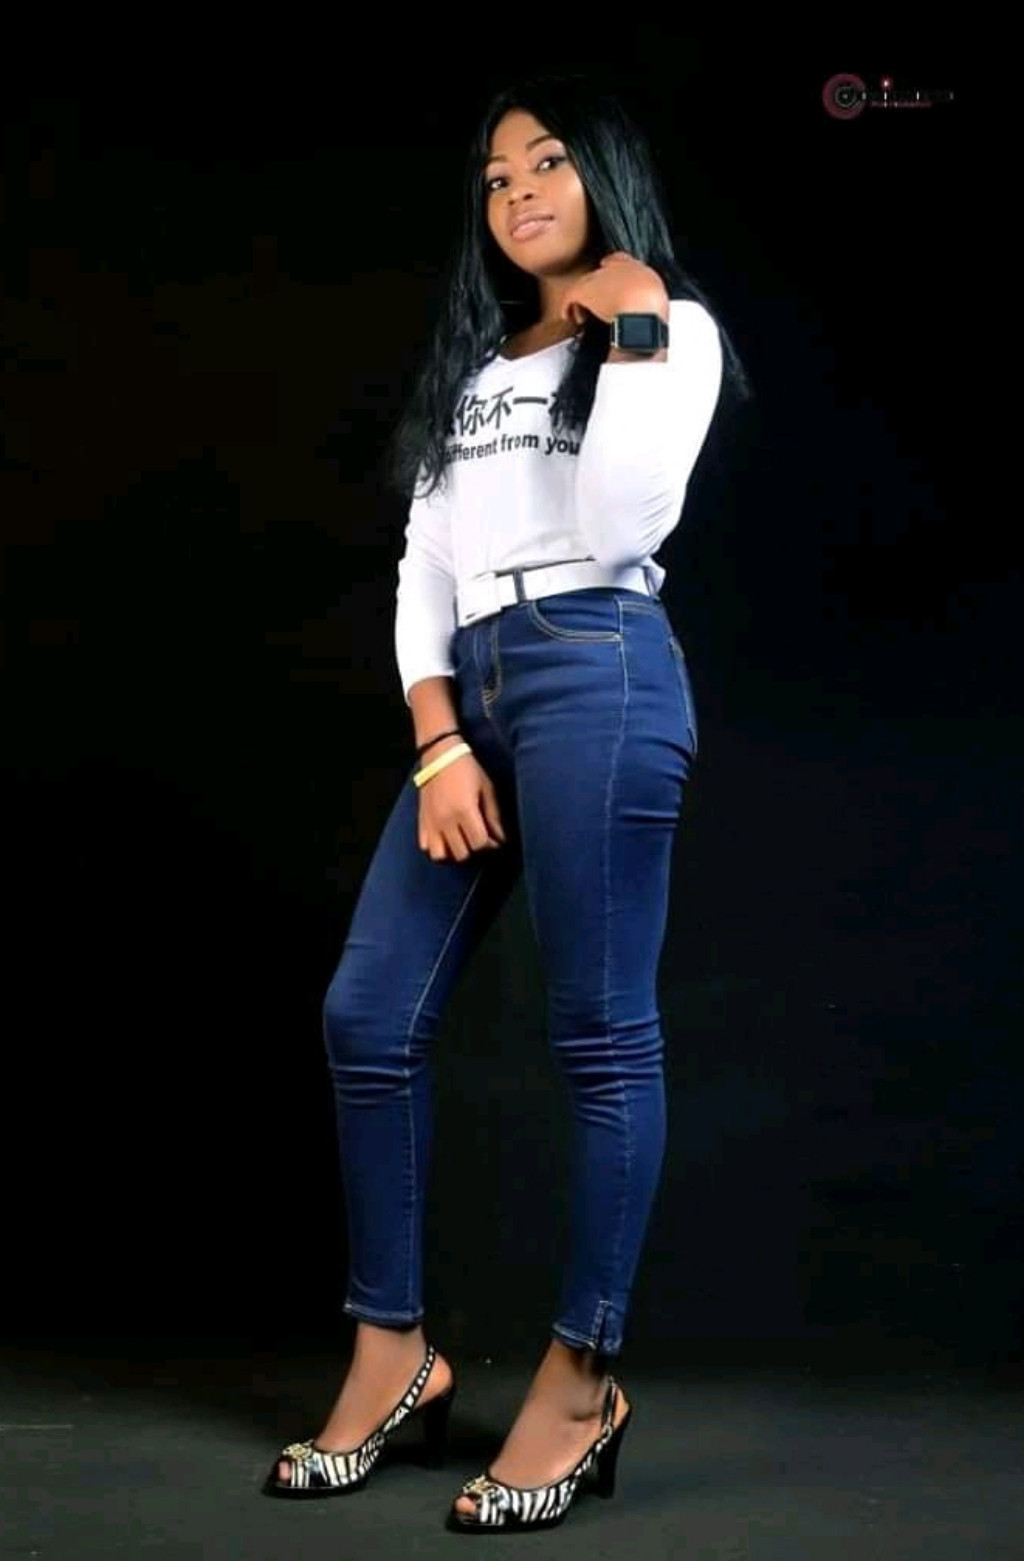 Happy birthday #fairgirl Live long and prosper @queenbonny God bless ur new age